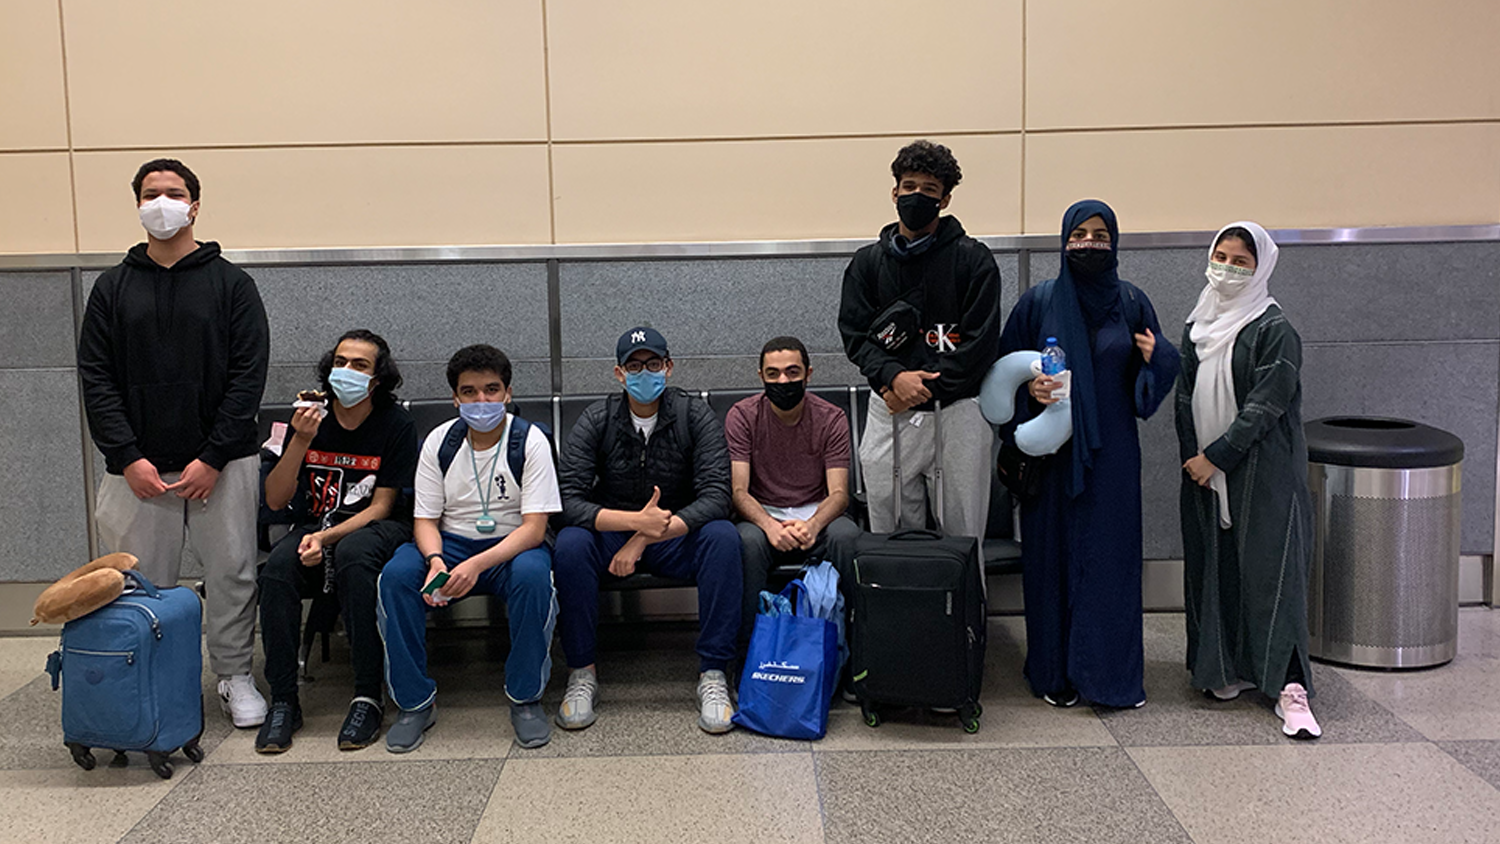 A group of Saudi Arabian high school students at the airport at RDU in Raleigh, NC.